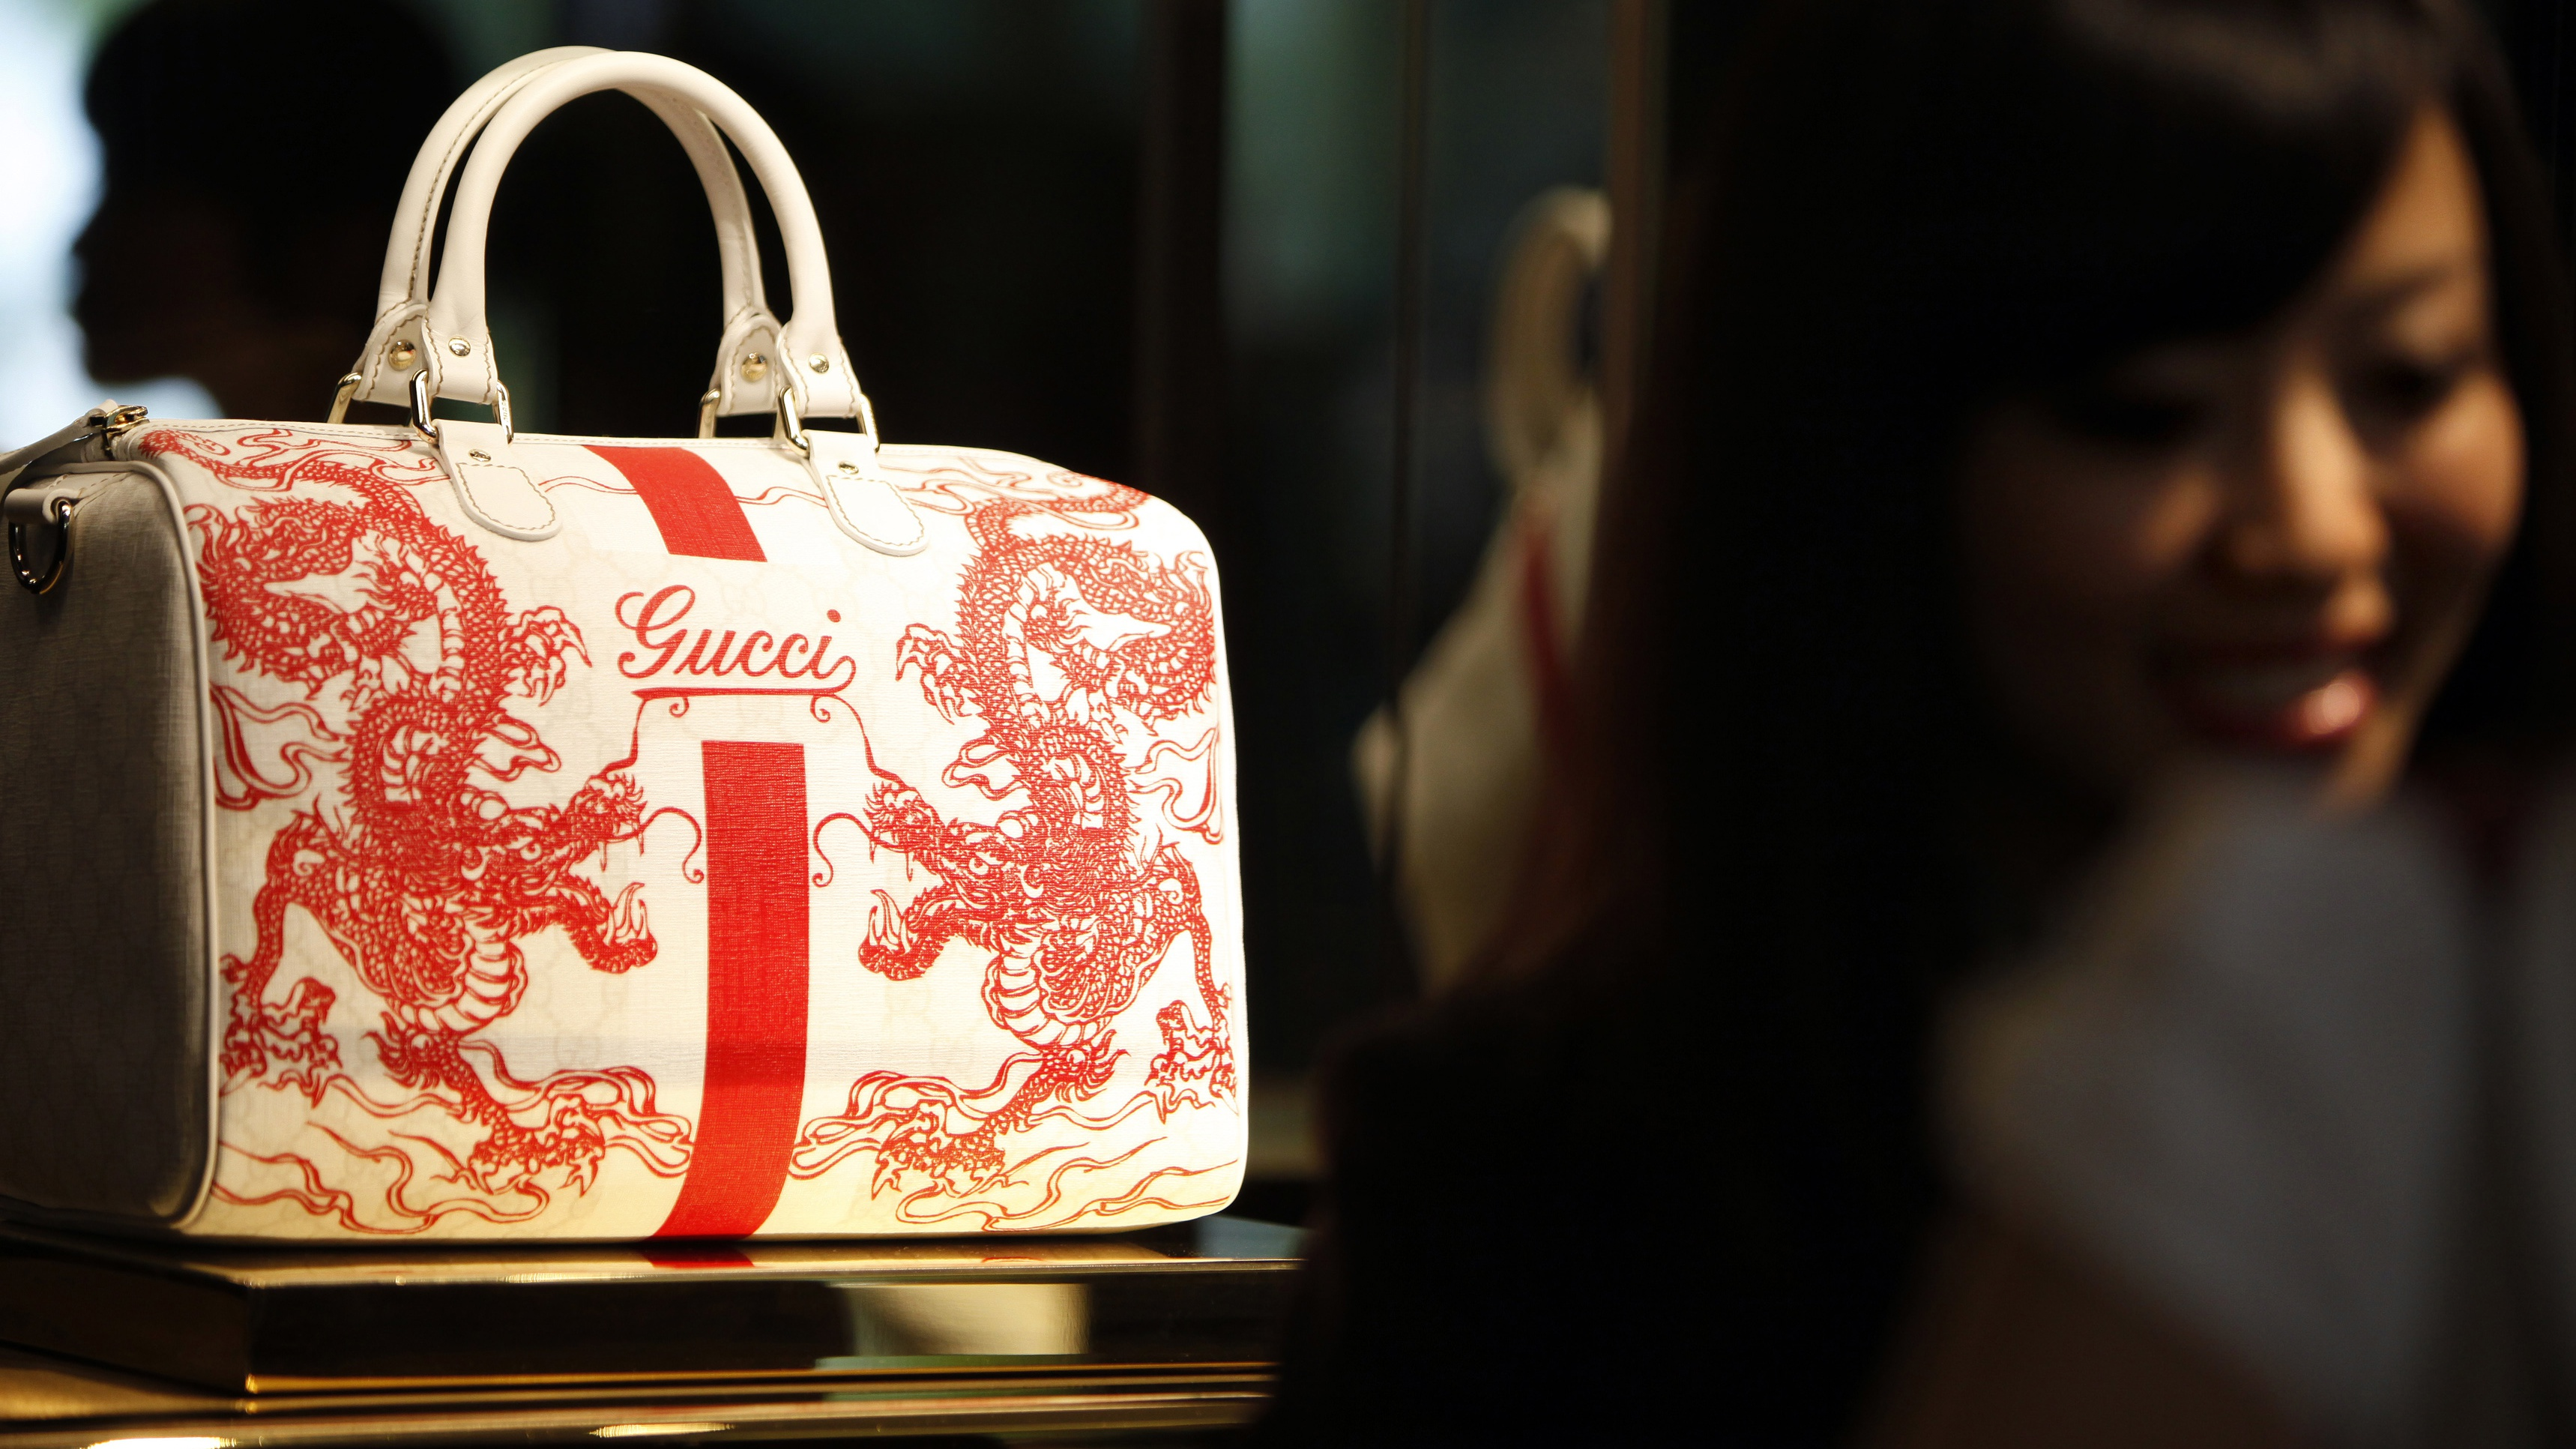 A staff member of the new Gucci flagship store in Shanghai chats with customers next to a bag on display on its opening day June 6, 2009. Luxury brand Gucci plans to open two to four more stores this year in China, after opening its 28th on Saturday, undeterred by uncertainty in the global economy as China is set to lead future luxury consumption, Gucci CEO Patrizio Di Marco said.